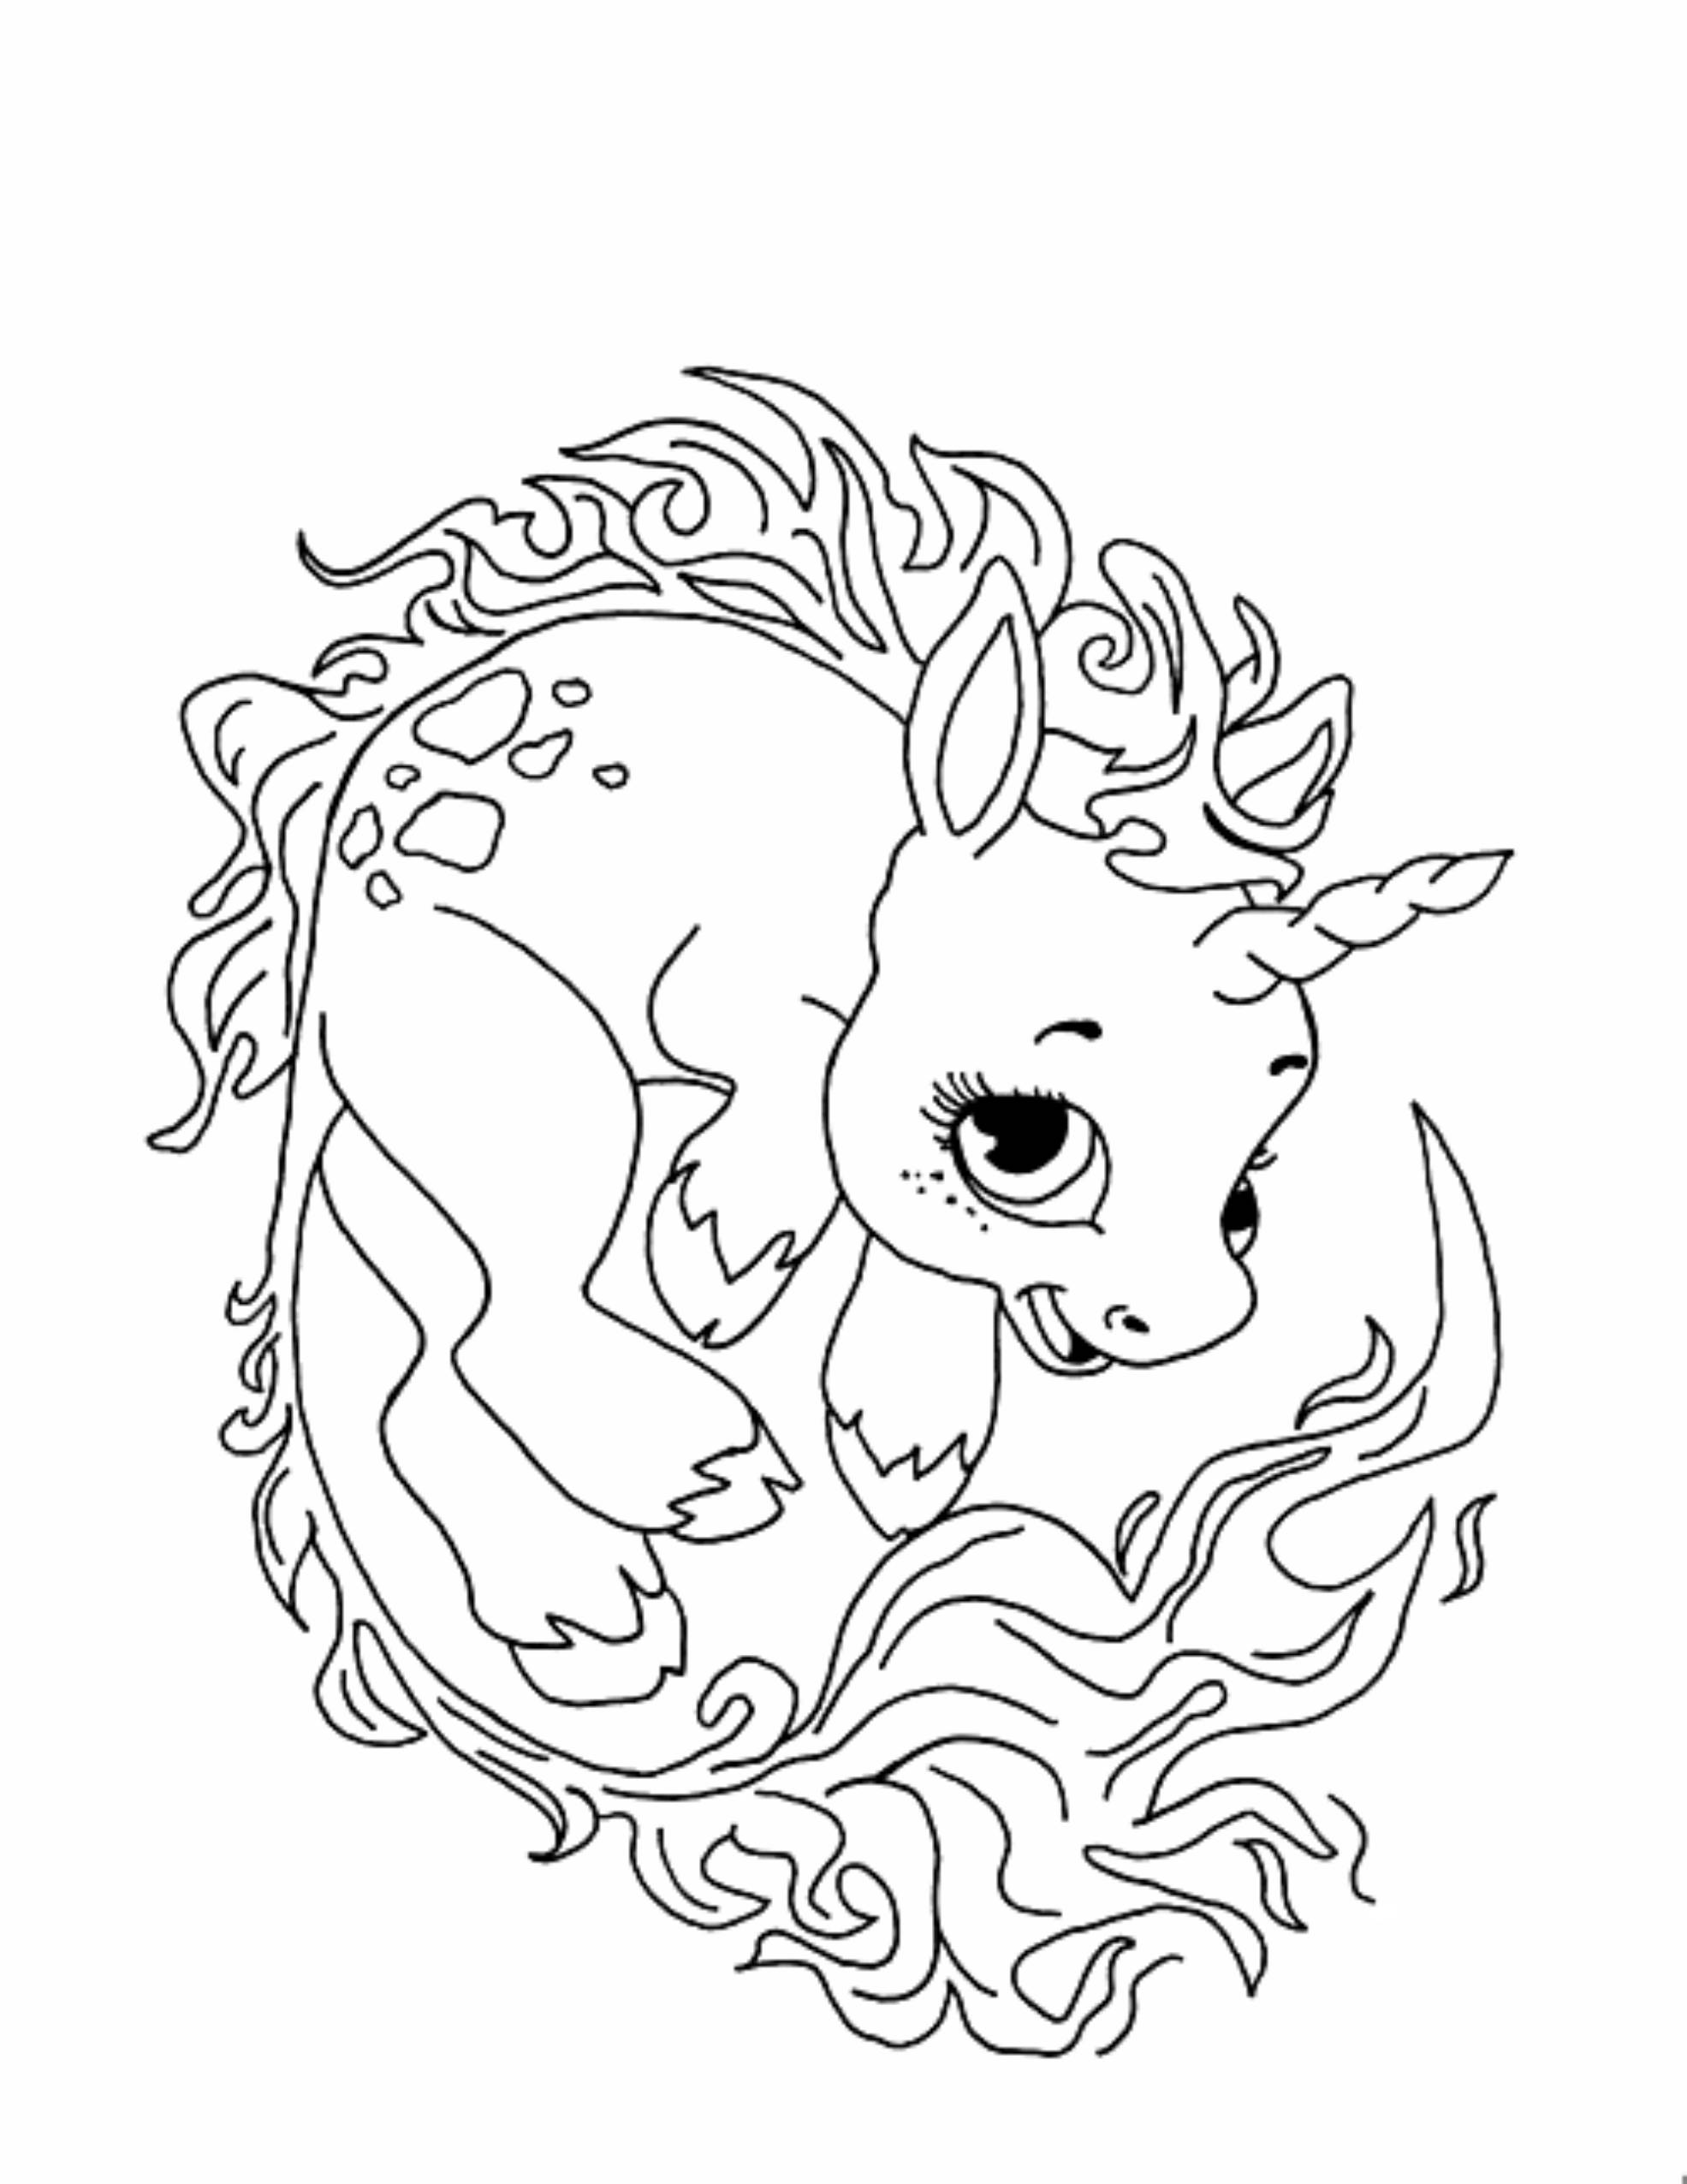 a unicorn coloring sheet unicorn coloring pages to download and print for free a unicorn sheet coloring